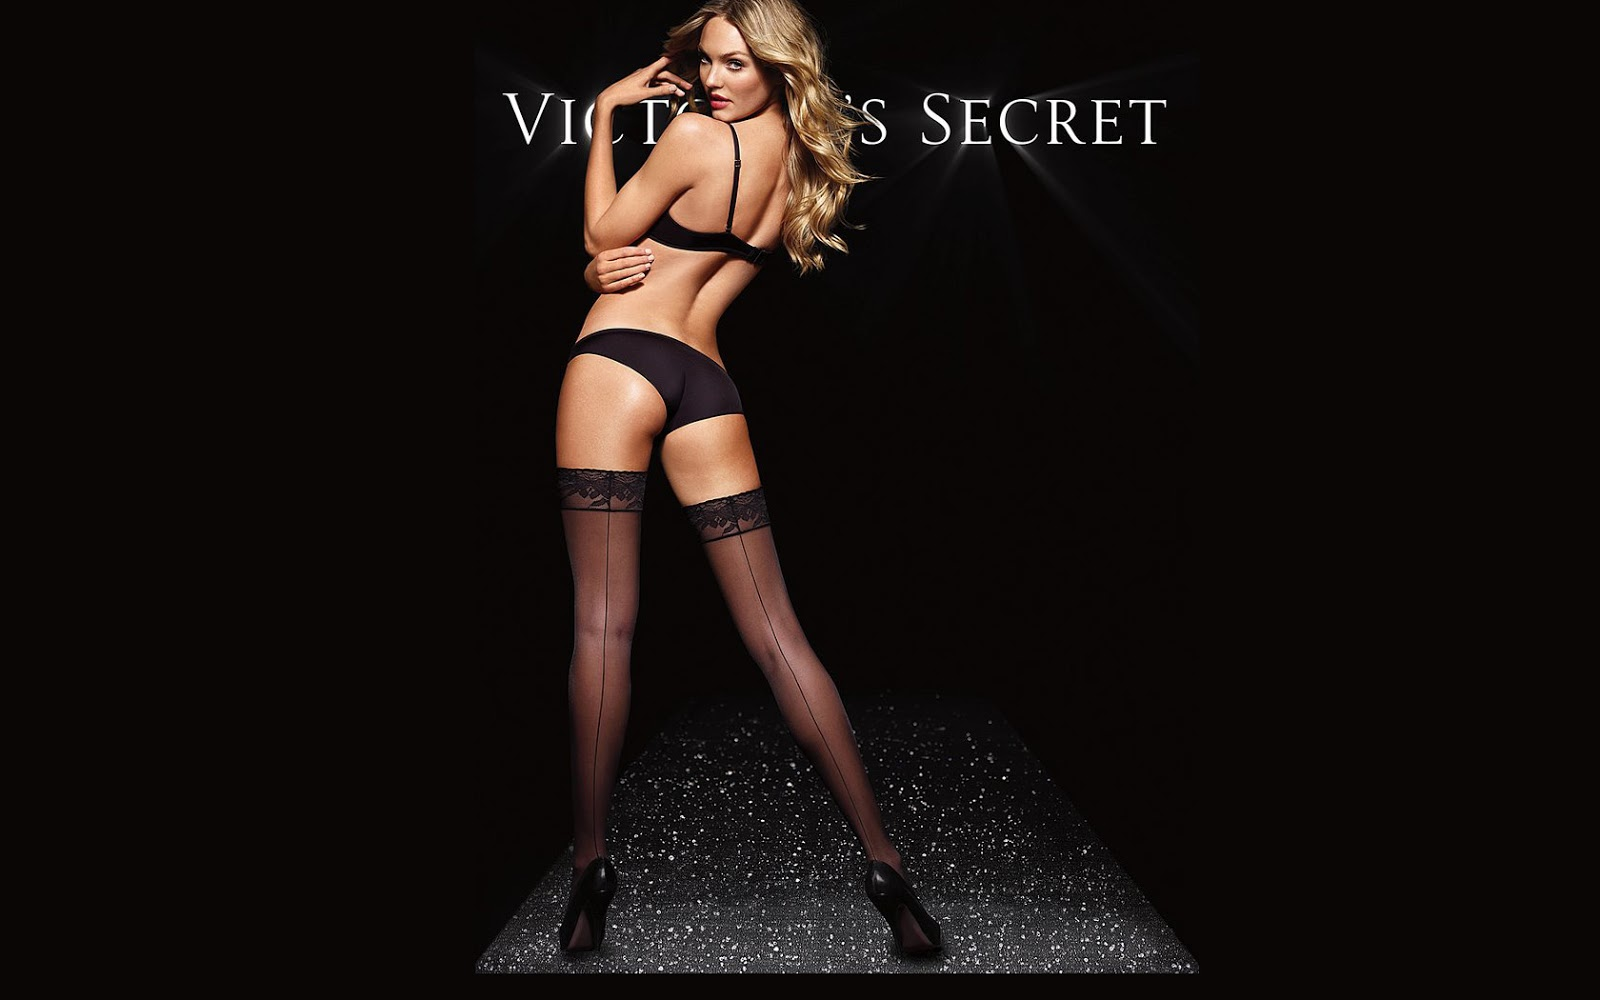 Watch Victorias Secret Panties porn videos for free, here on truecup9v3.ga Discover the growing collection of high quality Most Relevant XXX movies and clips. No other sex tube is more popular and features more Victorias Secret Panties scenes than Pornhub! Browse through our impressive selection of porn videos in HD quality on any device you own.